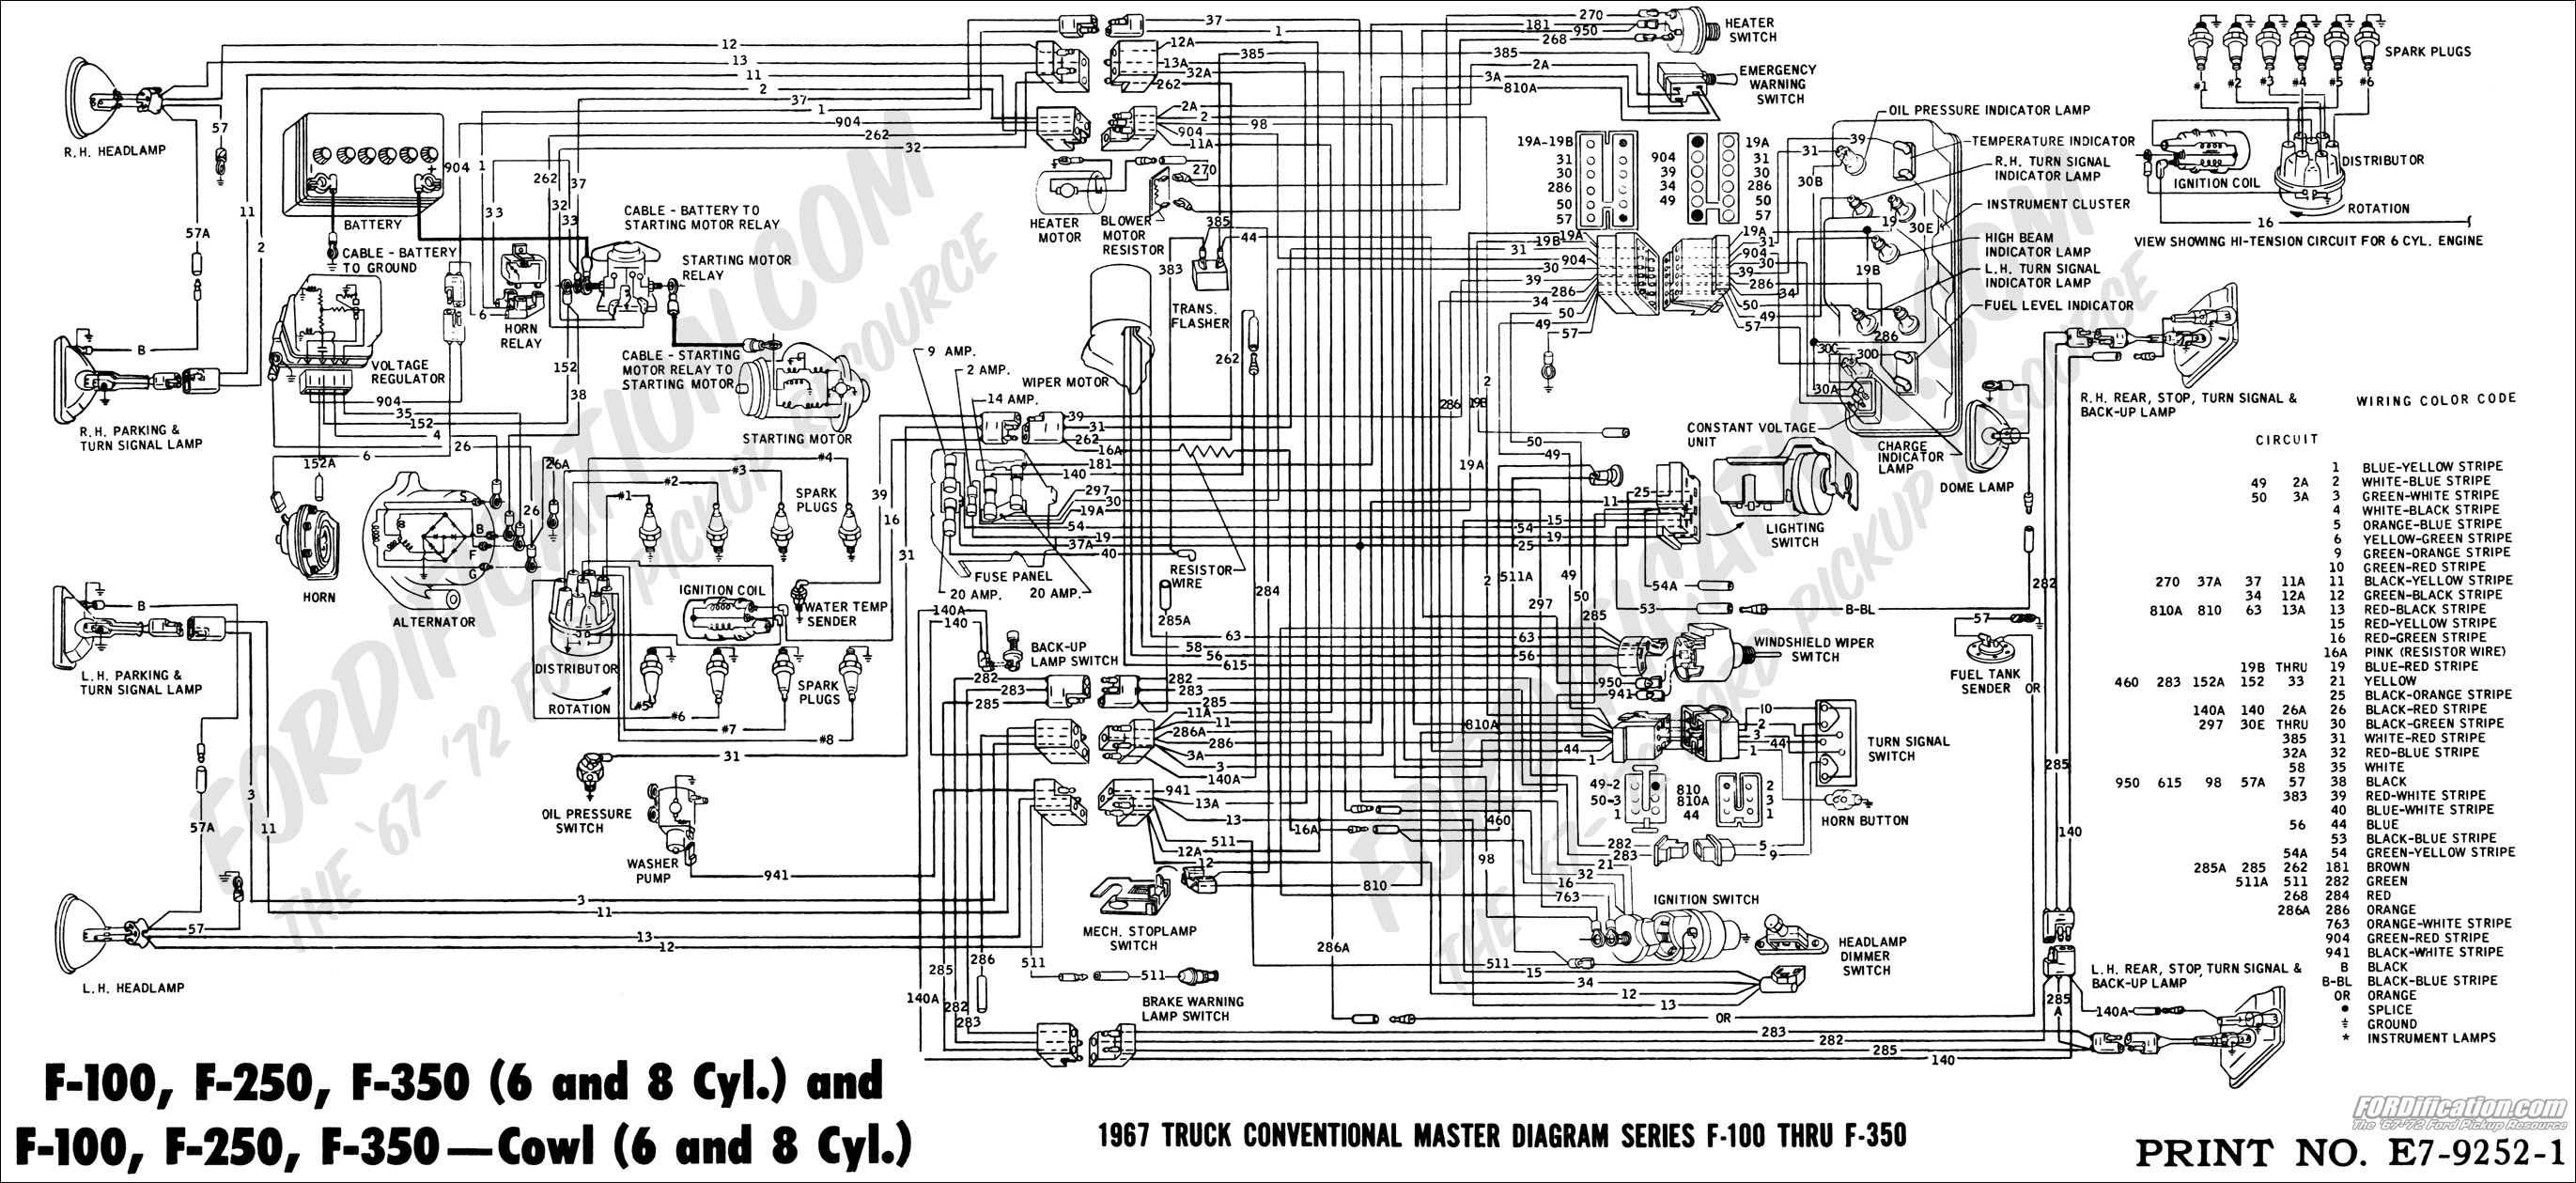 02 ford f350 wiring diagram | cater-registre wiring diagram -  cater-registre.nephrotete.de  nephrotete.de